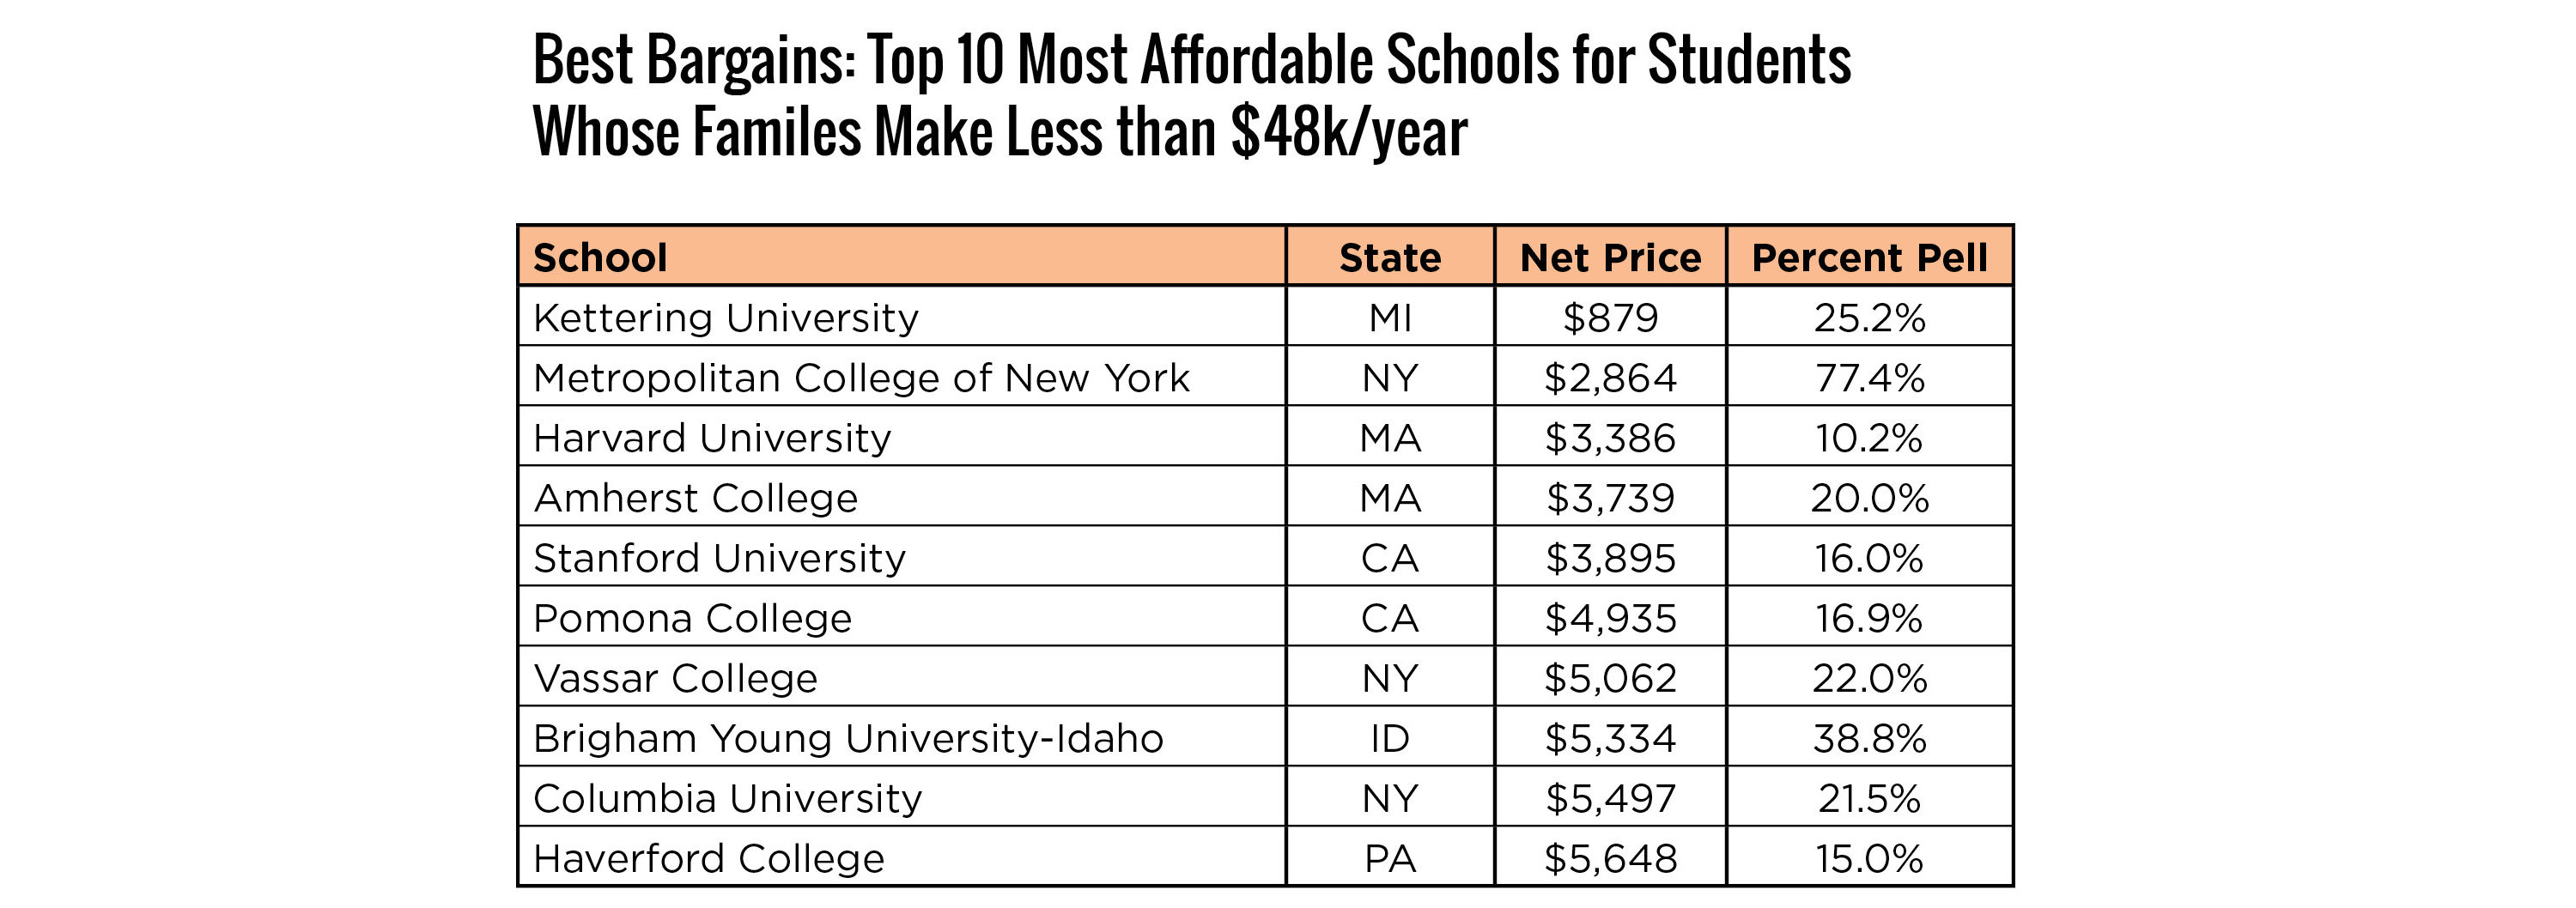 Best Bargains, Top 10 most affordable schools